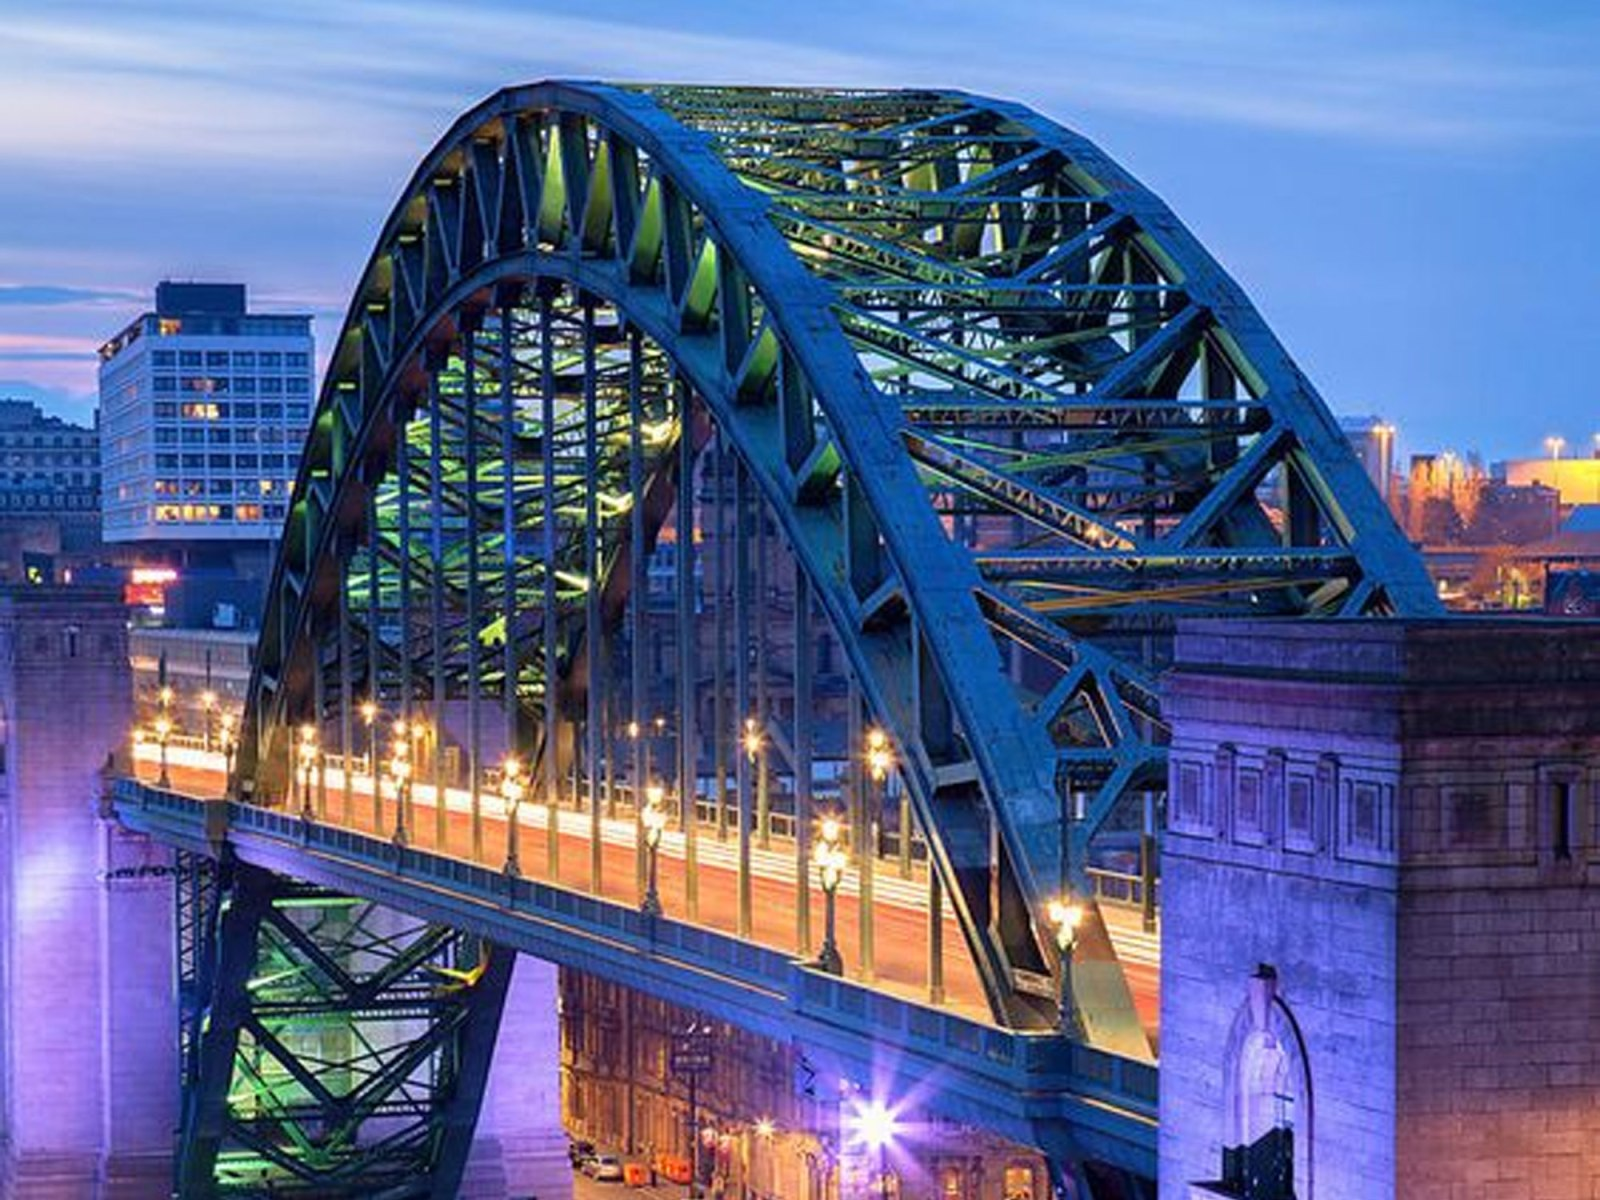 We all deserve a weekend away sometimes (all the time IMO), and what better place to spend it than in themost famous city in the North East. Here are 10 cozy getaways Newcastle has to offer that you need to check out.